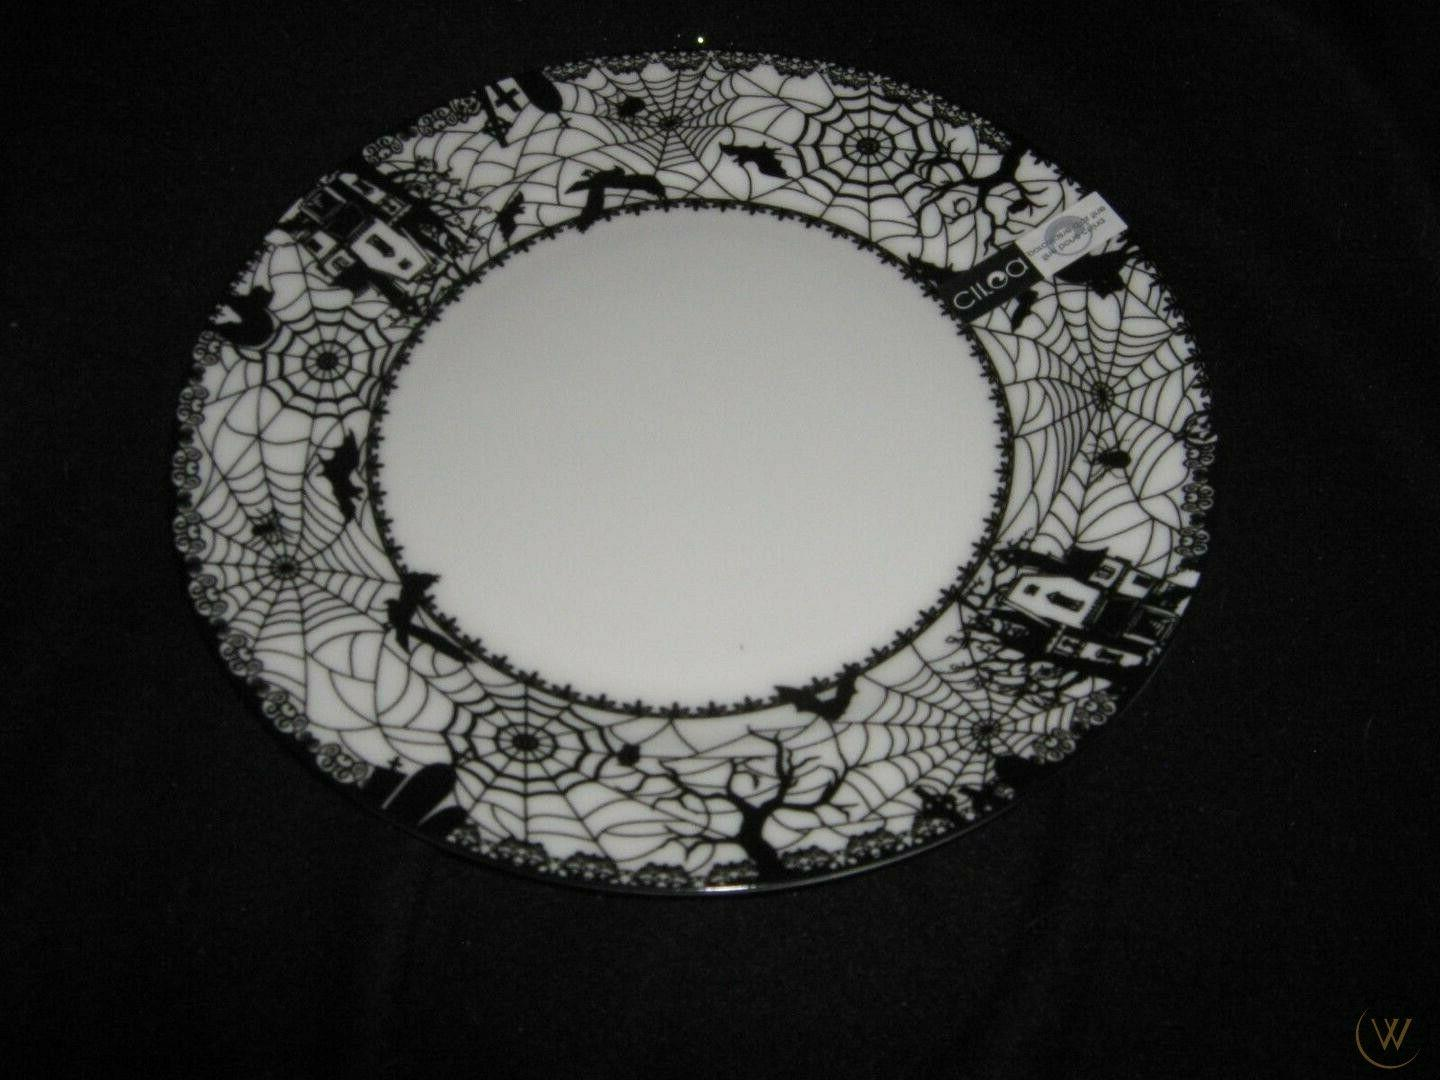 CIROA Wicked Wiccan Lace Dinner of 4 - Box